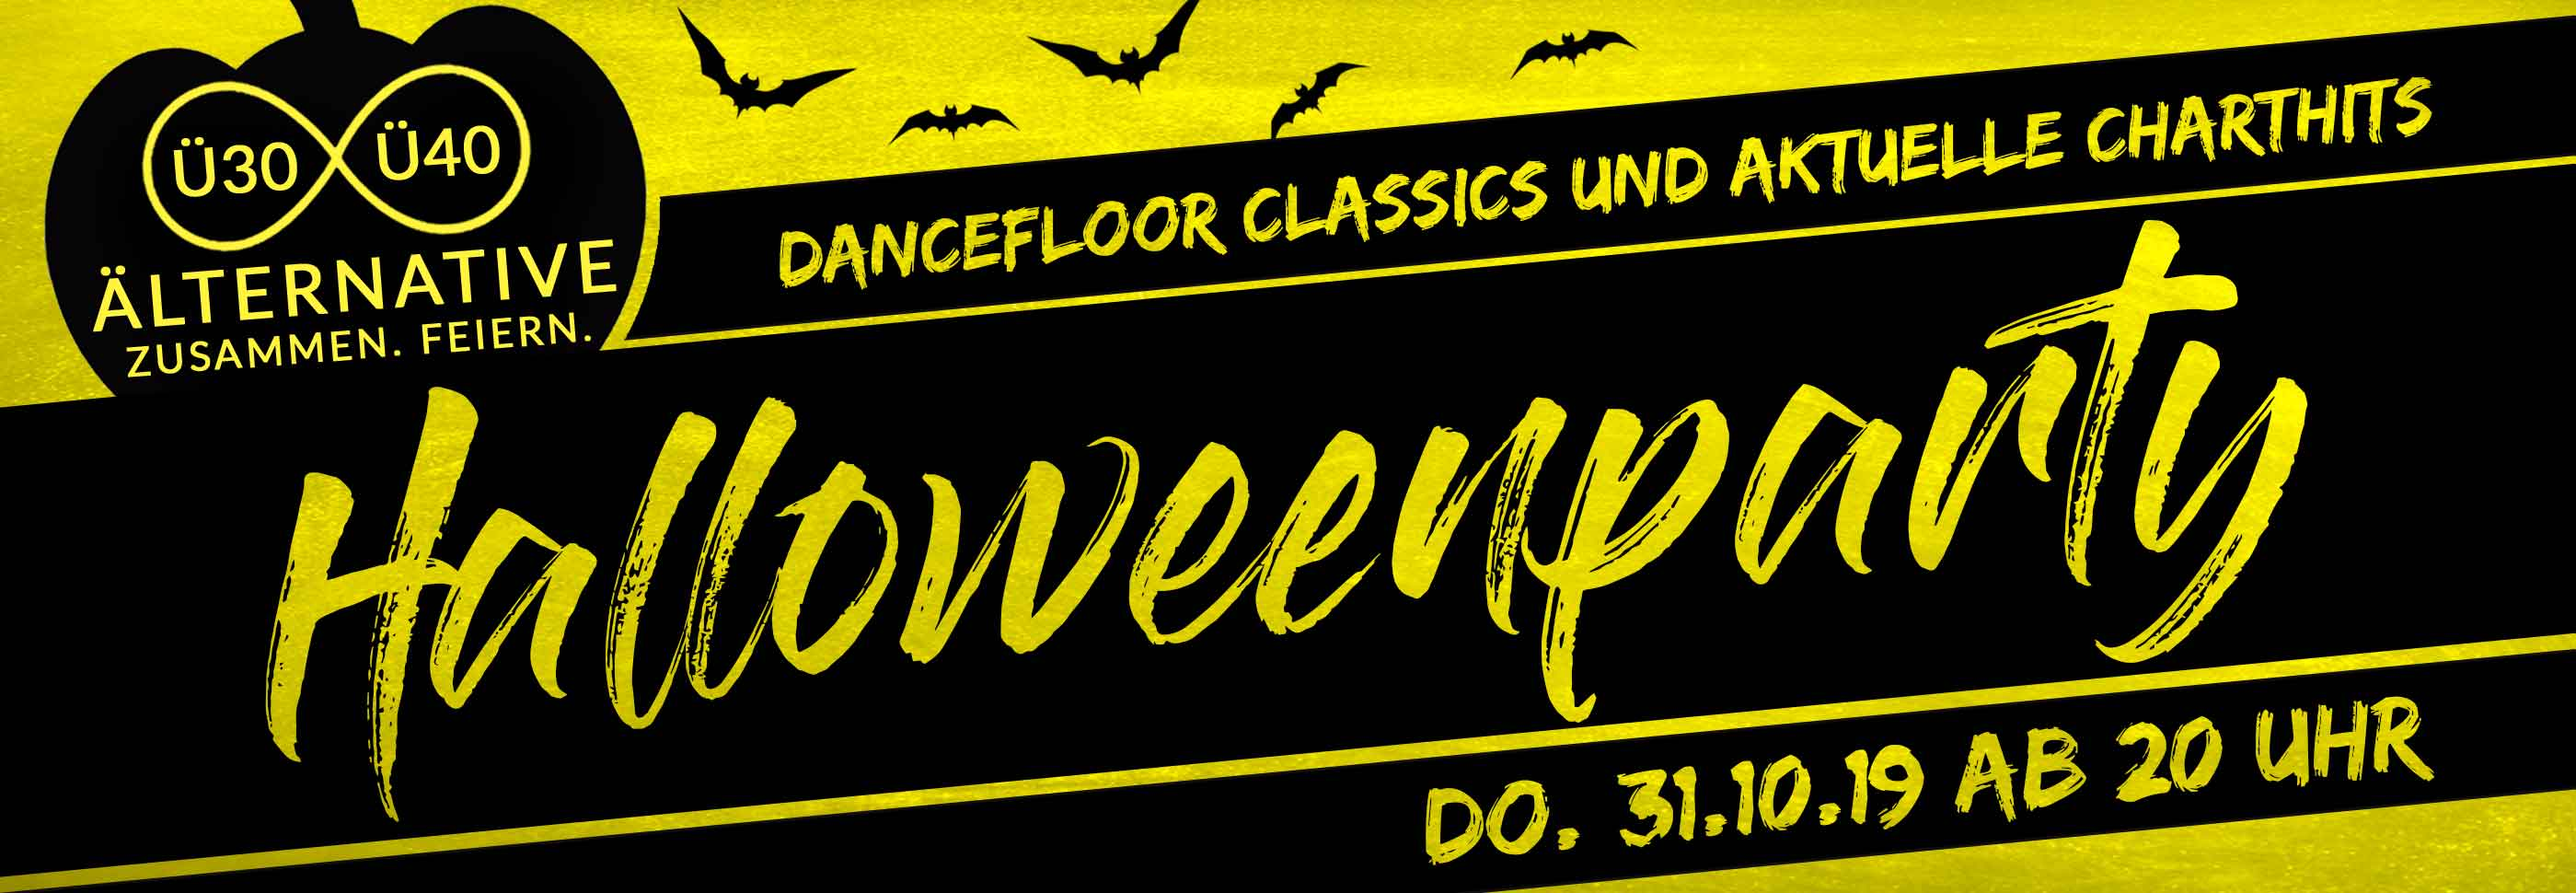 Generation ü30 und ü40 Halloween Party in Köln 2019